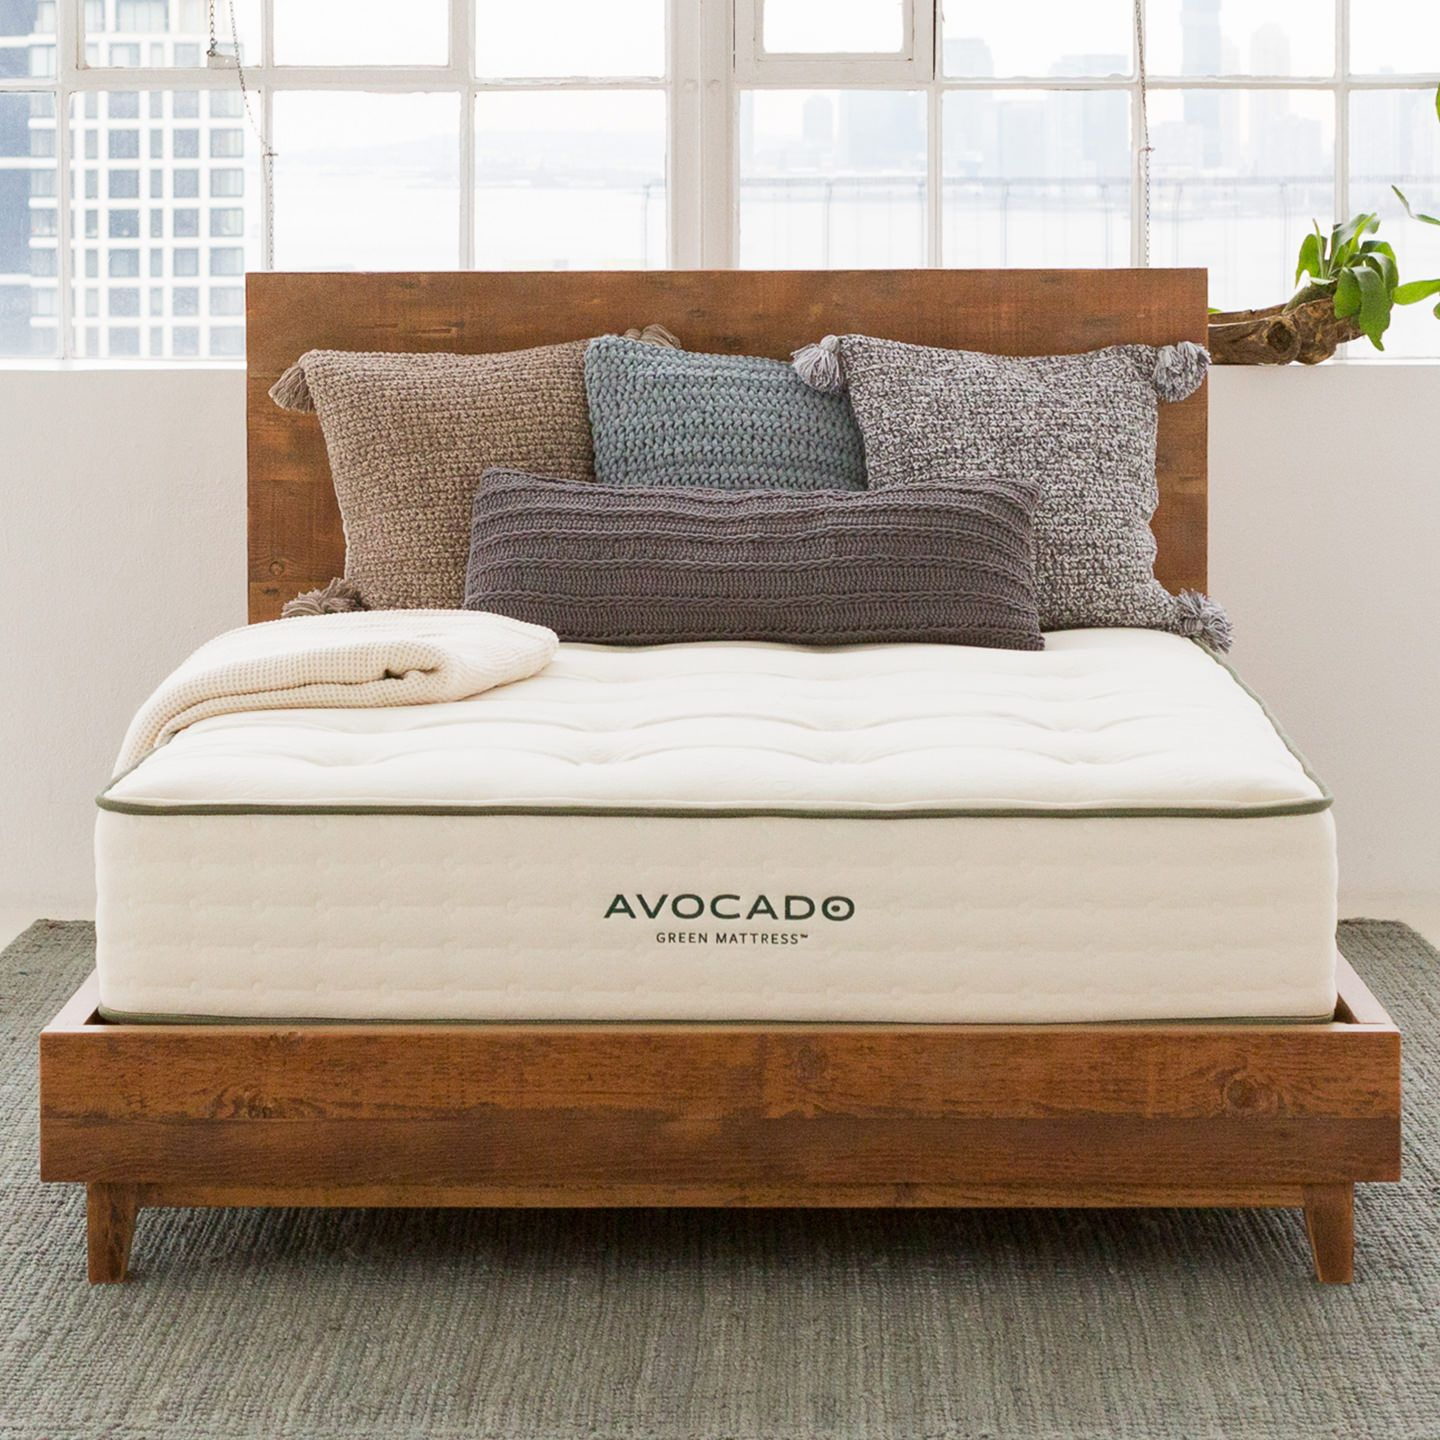 Mattress Discounts And Promotions Avocado Green Mattress Green Mattress Discount Mattresses Bed Frame With